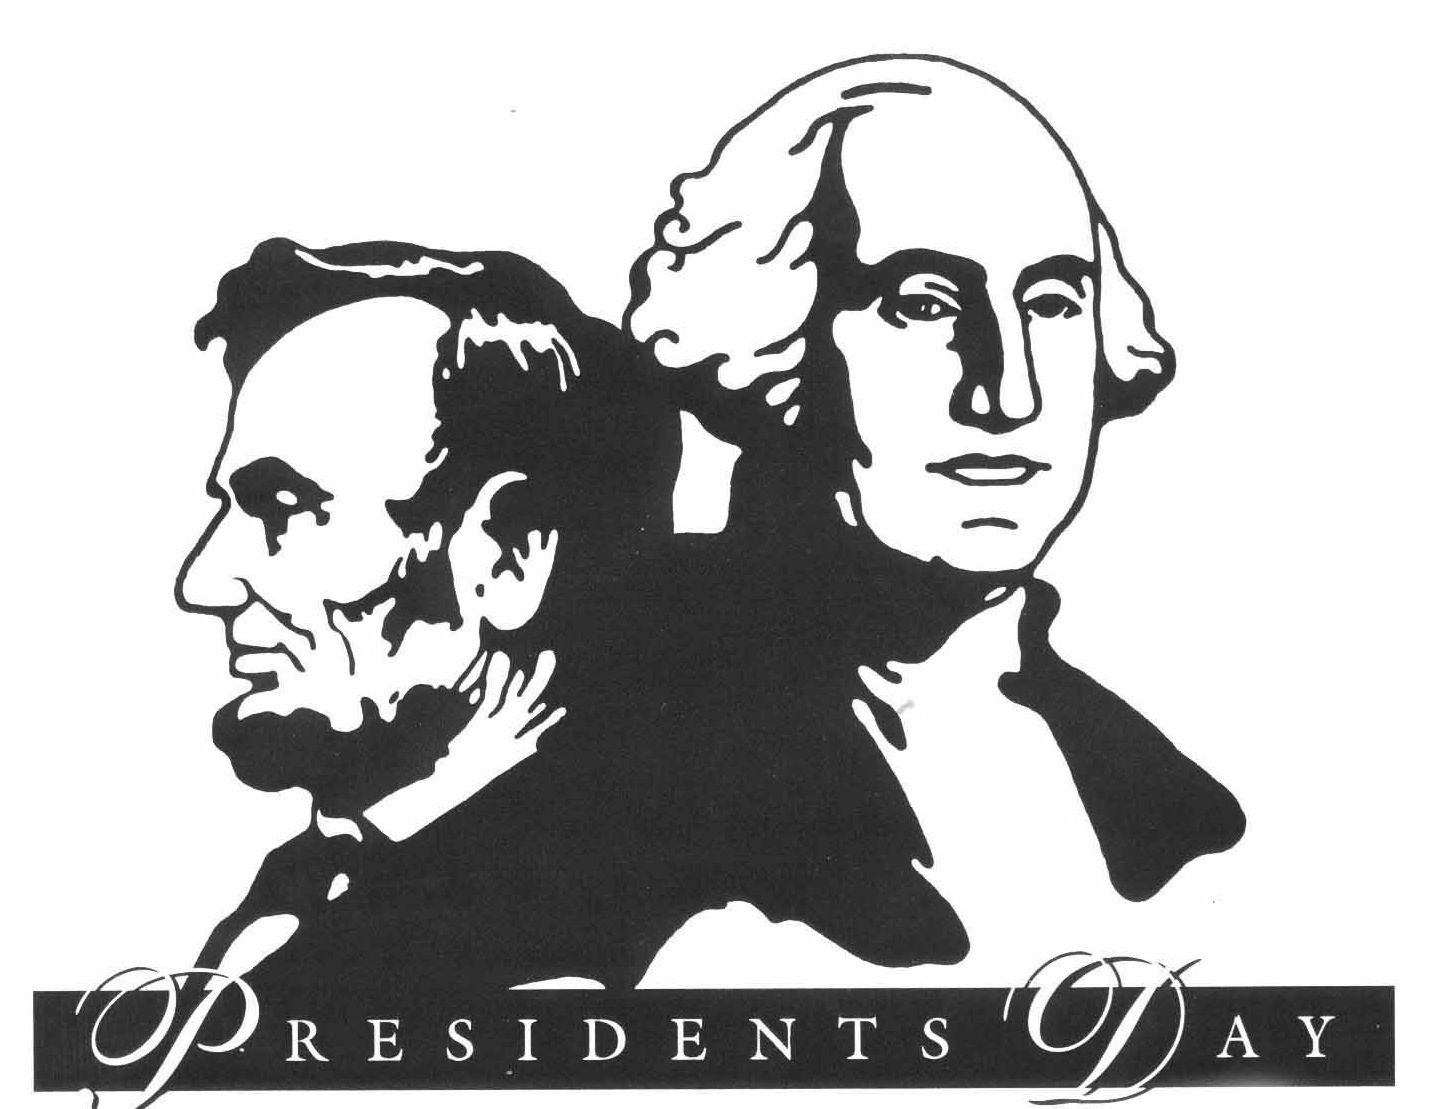 The Library will be closed on Monday, February 17 in observance of Presidents Day.